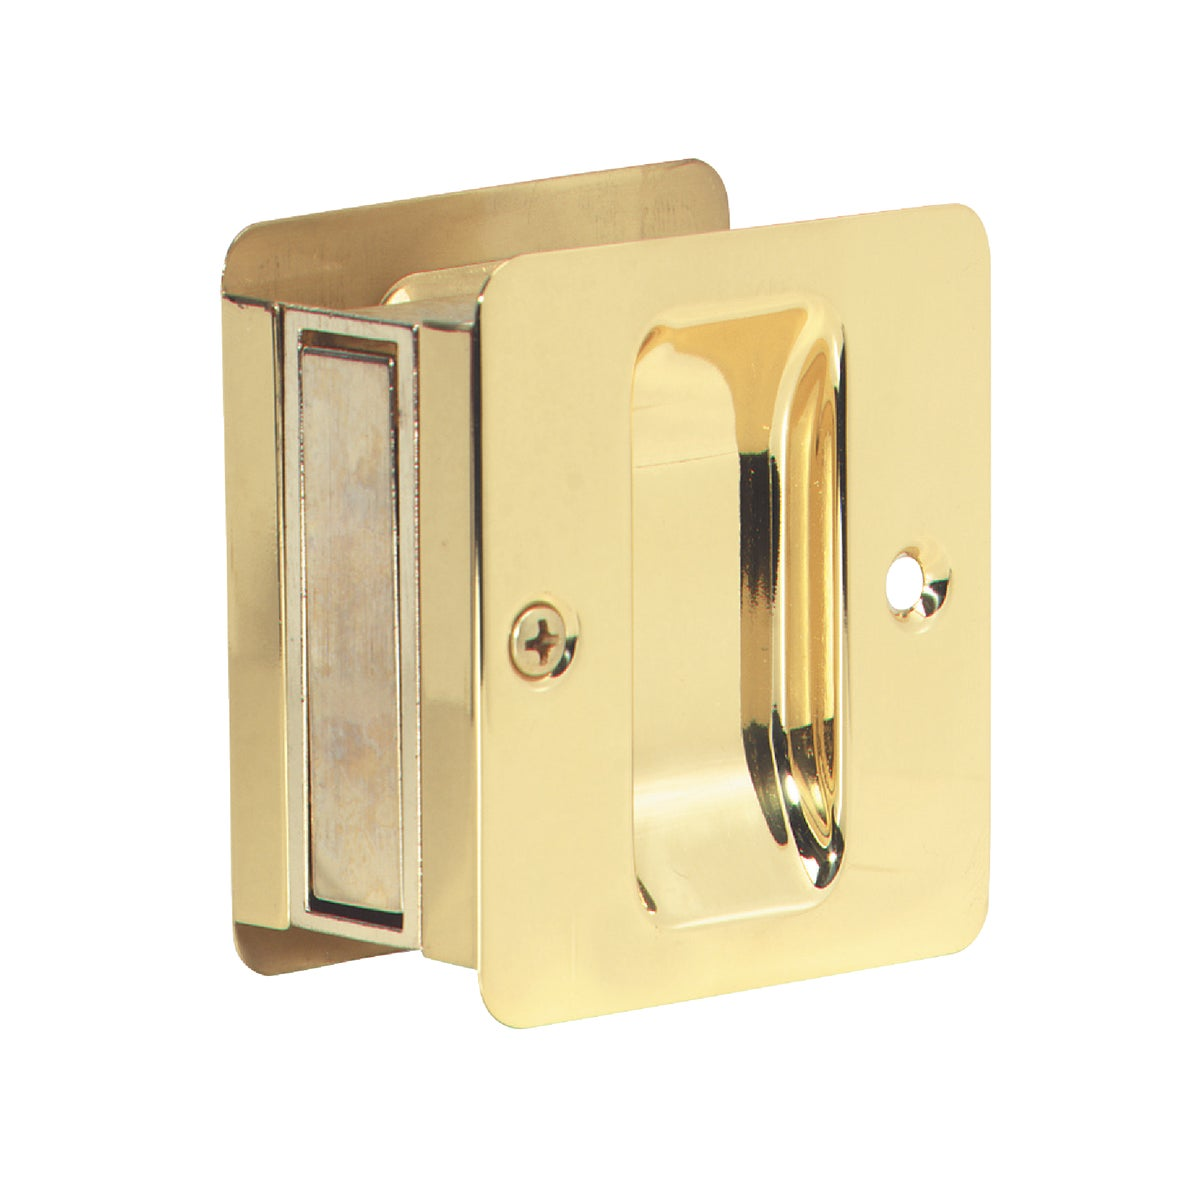 PB PASS POCKET DOOR PULL - SC990B-605 by Schlage Lock Co